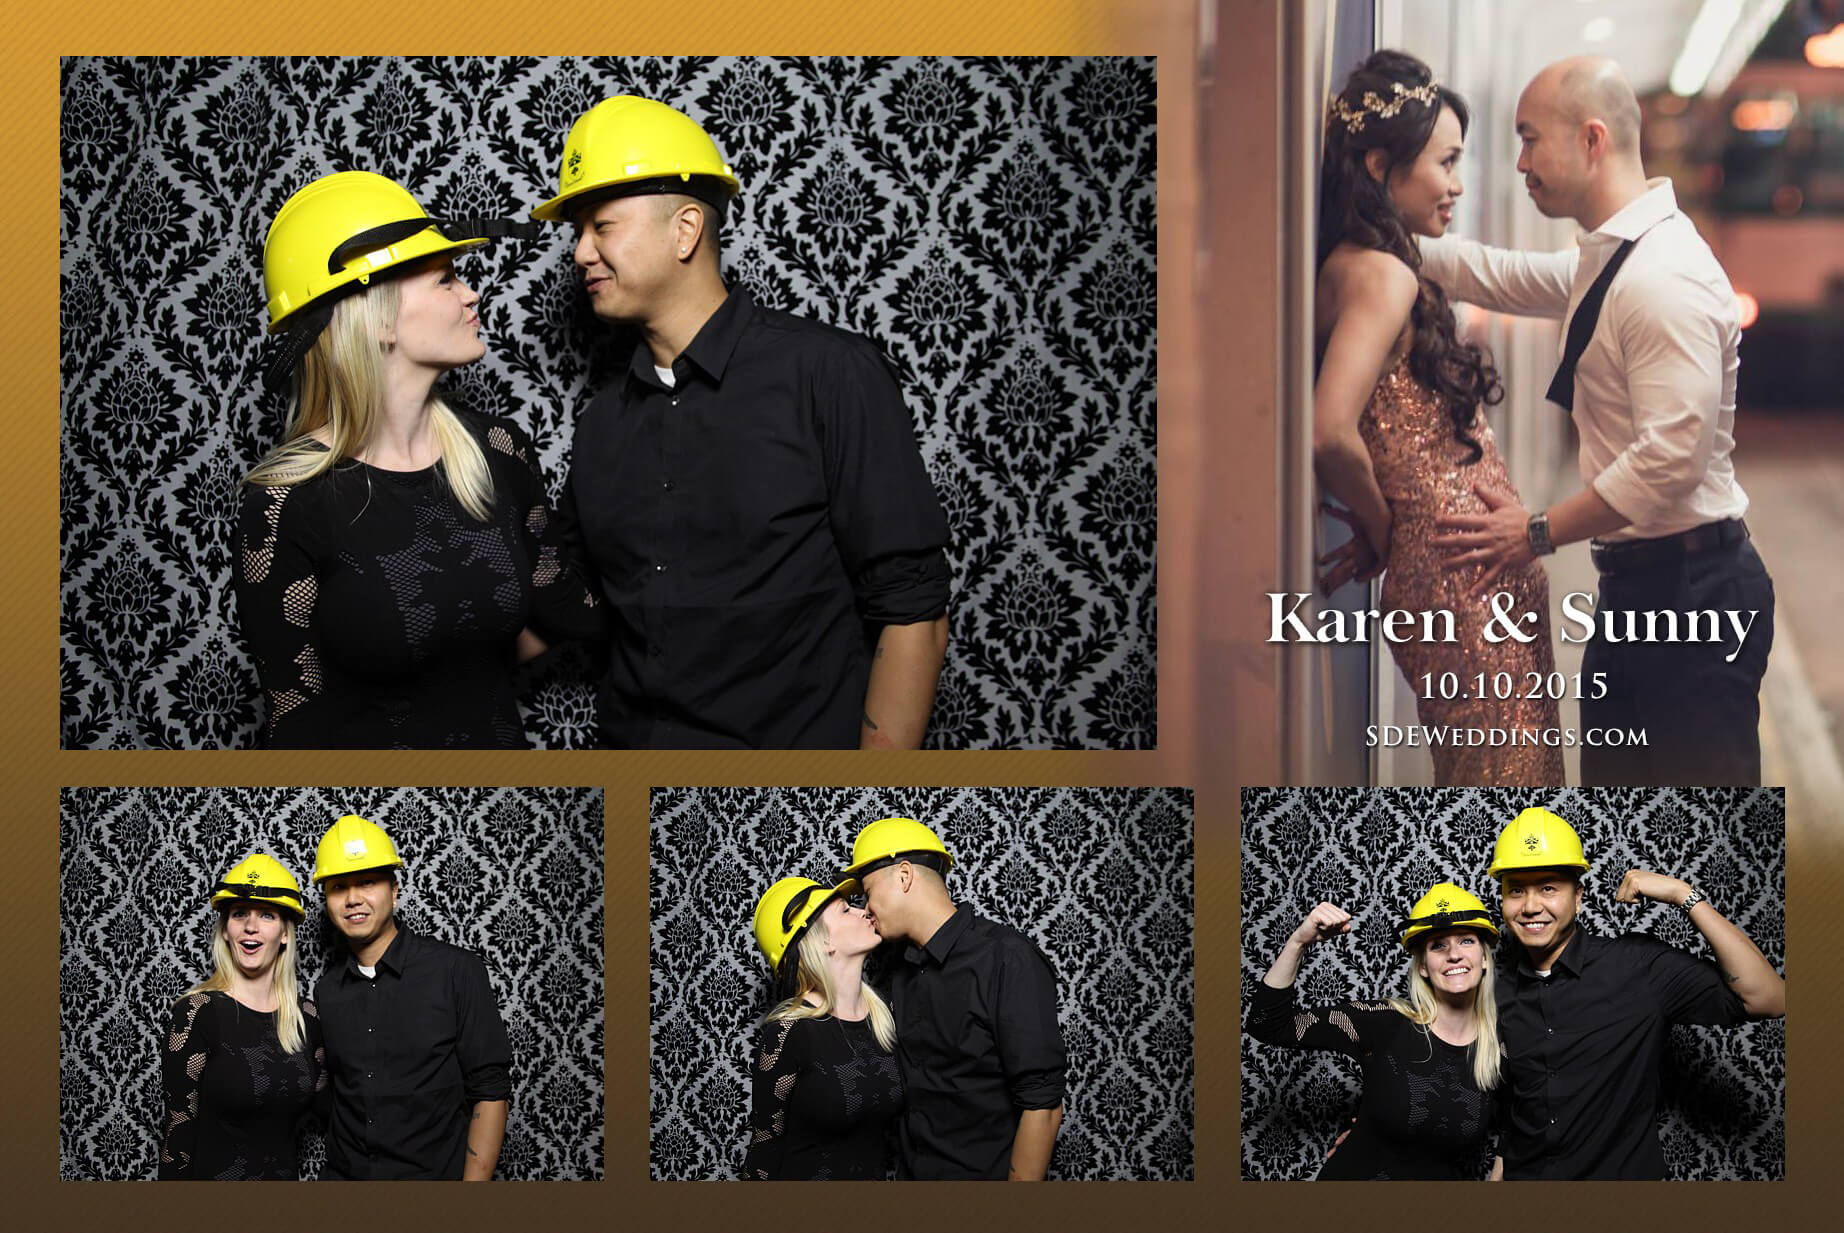 Toronto Fantasy Farm Wedding Photo Booth Rental 9